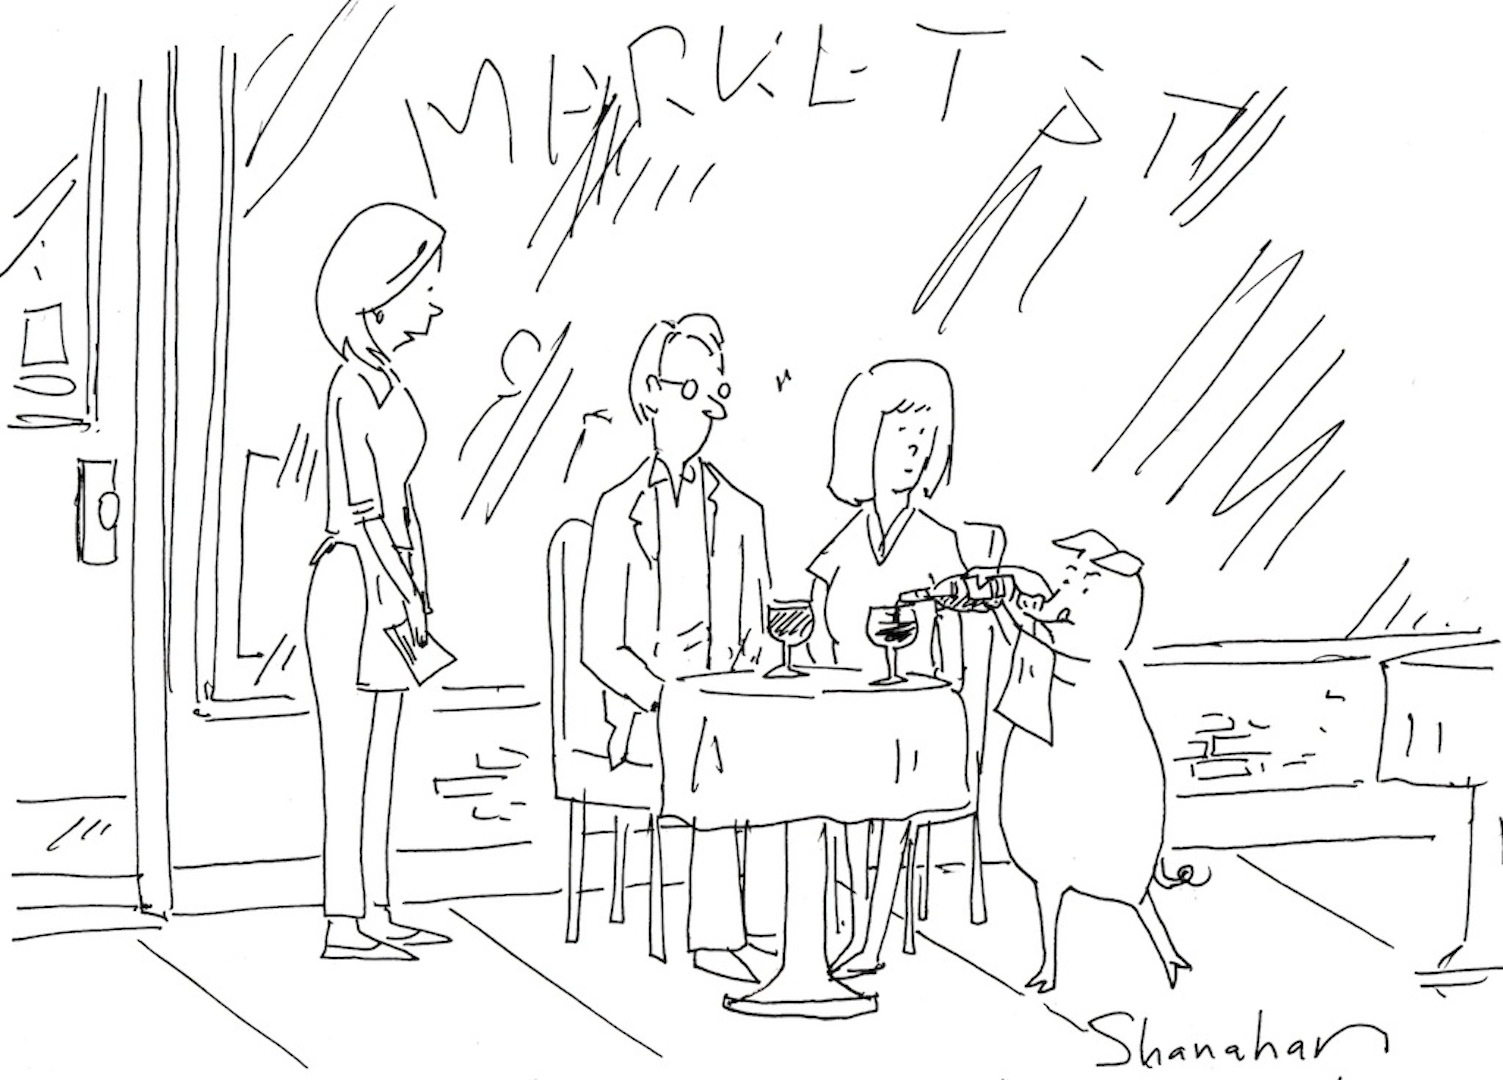 Attempted Bloggery: A Year of Captioning